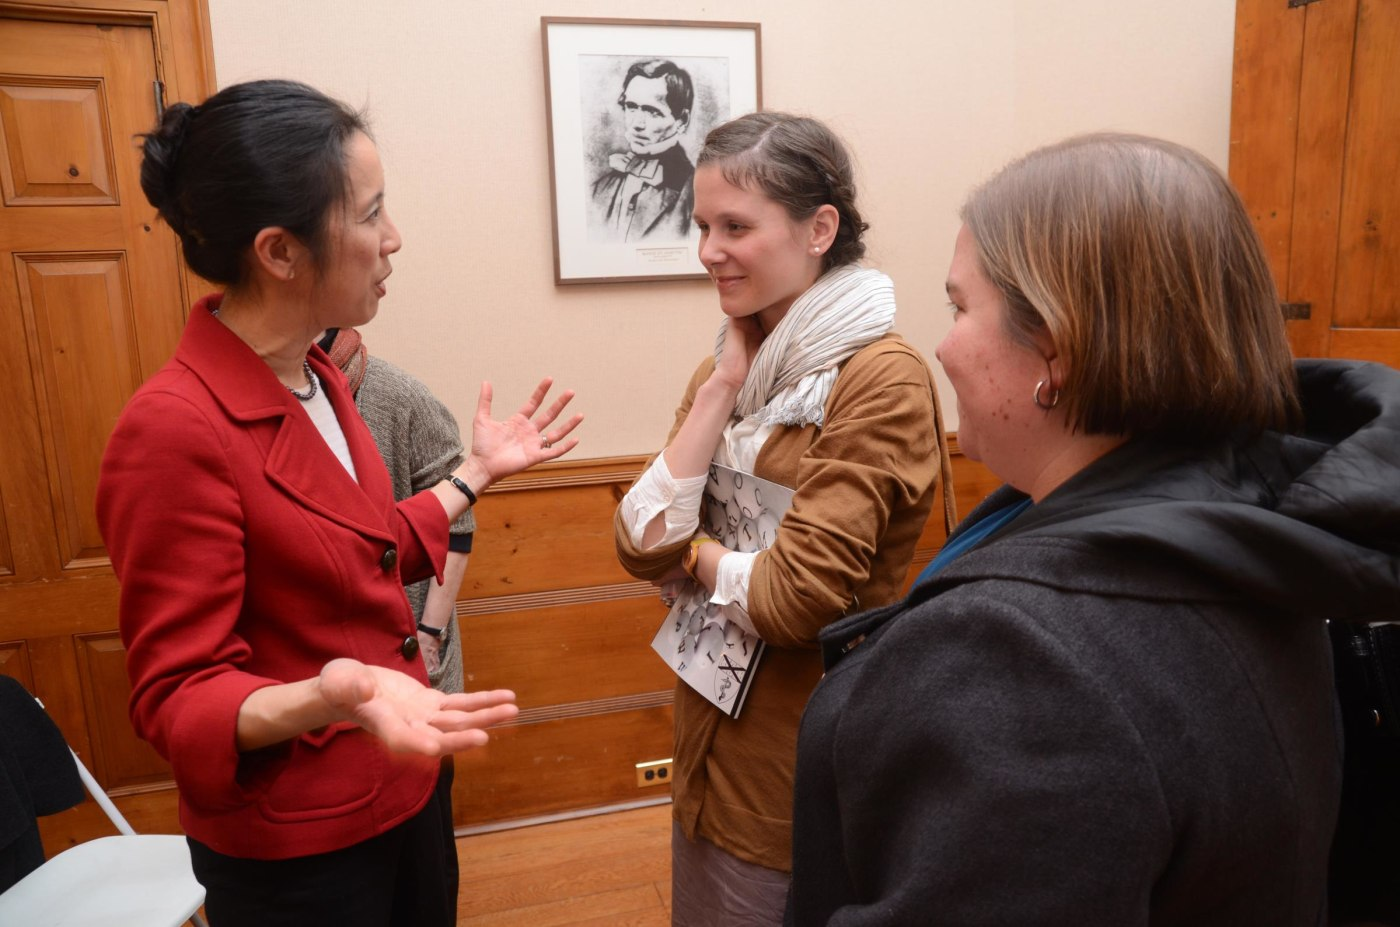 Pauline Chen talked about writing with residents Nora Segar and Allison Arwady